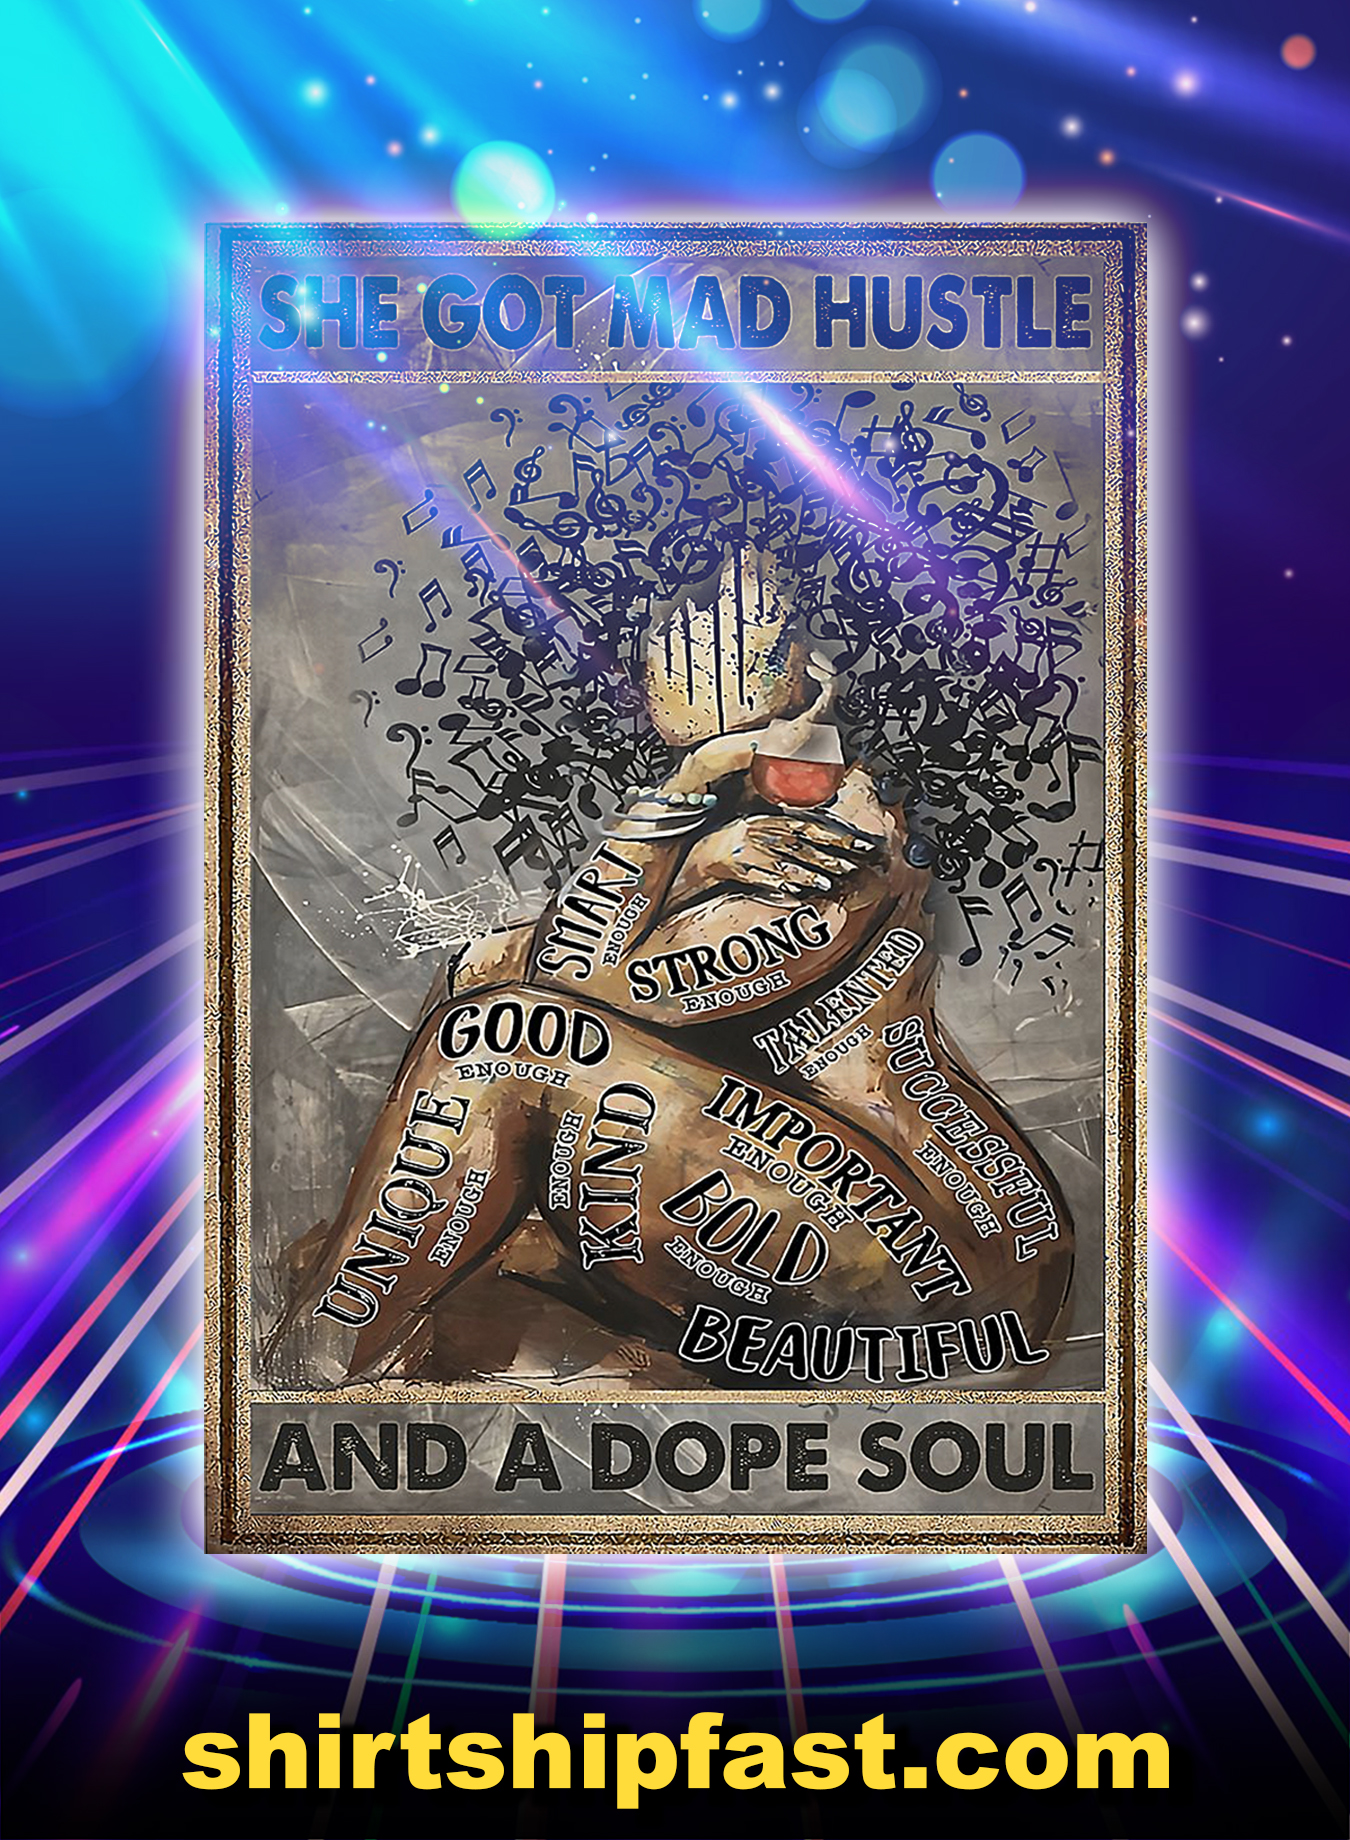 She got mad hustle and a dope soul poster - A3